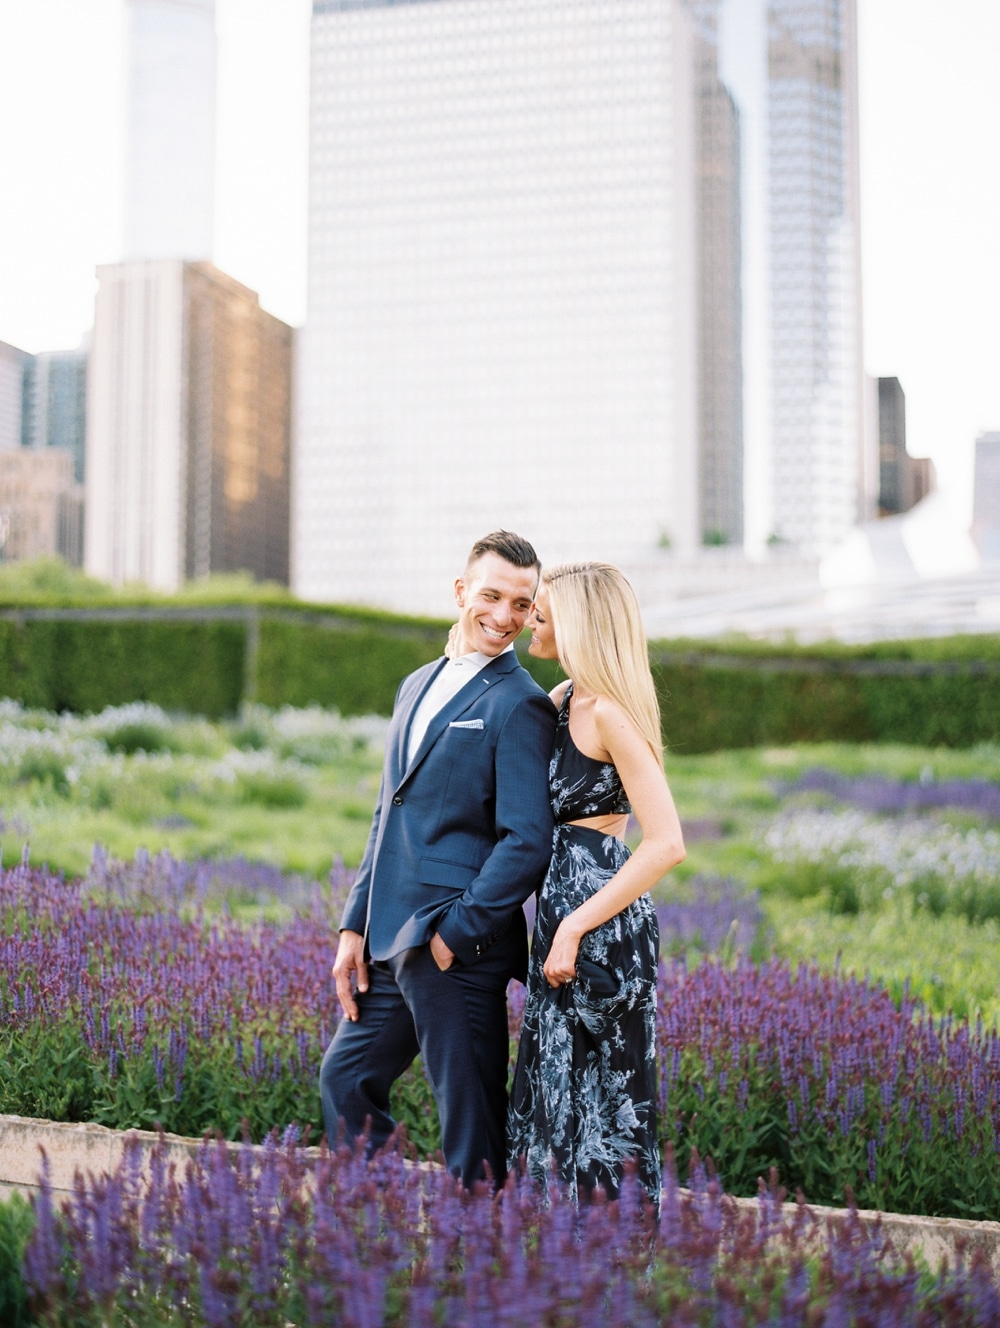 kristin-la-voie-photography-Chicago-Wedding-Photographer-Art-Institute-Lurie-Garden-Millennium-Park-22